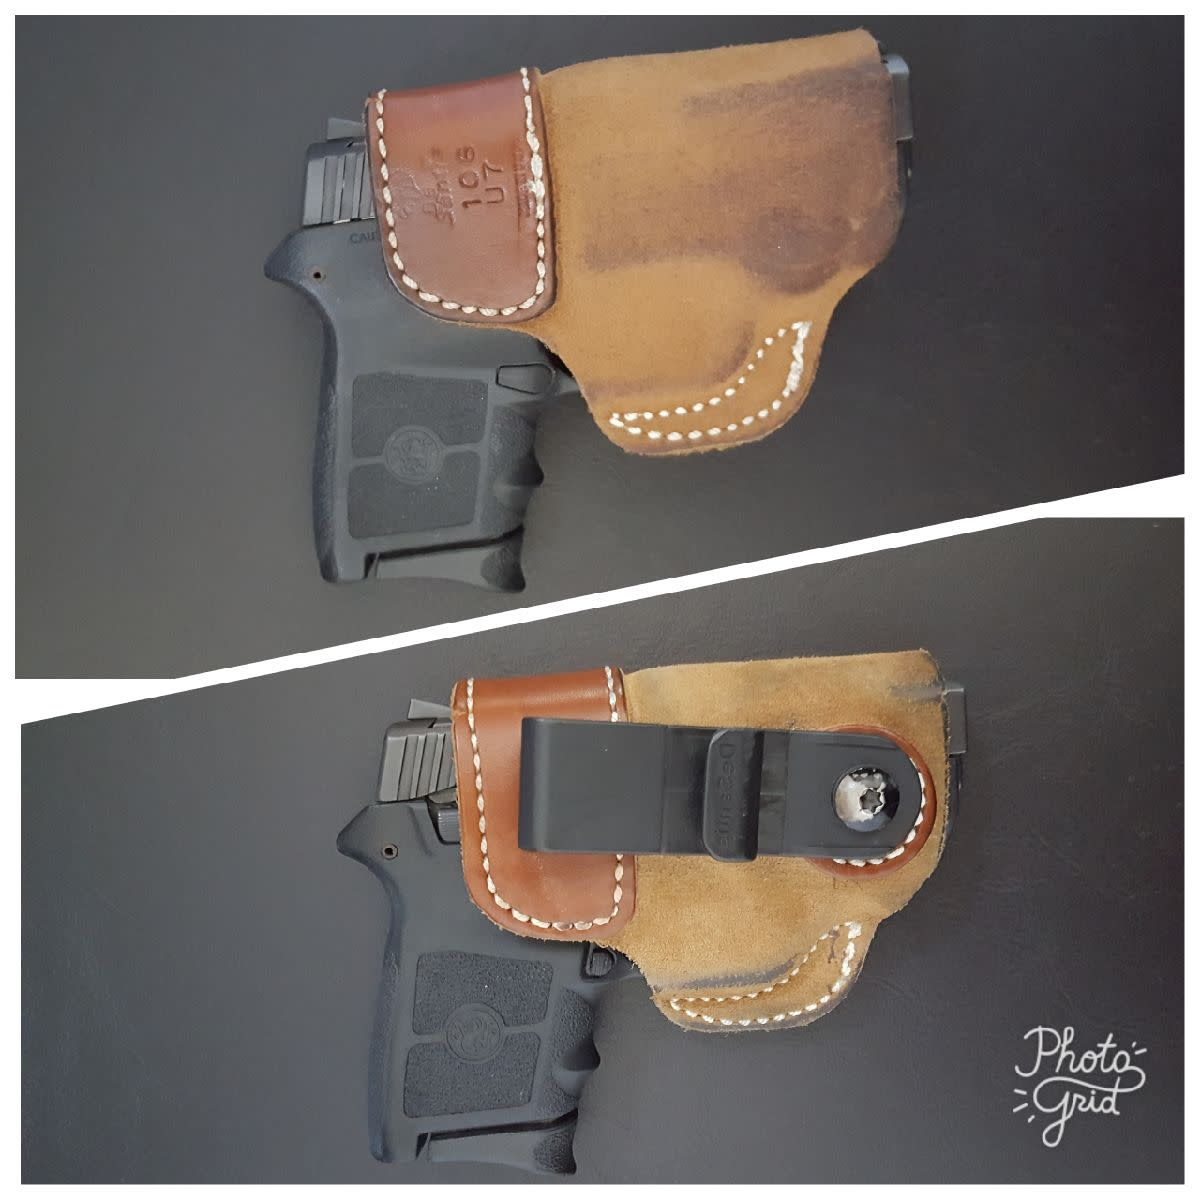 DeSantis Gunhide Sof-Tuck: Perfect IWB Carry For Your Favorite Pocket Pistol